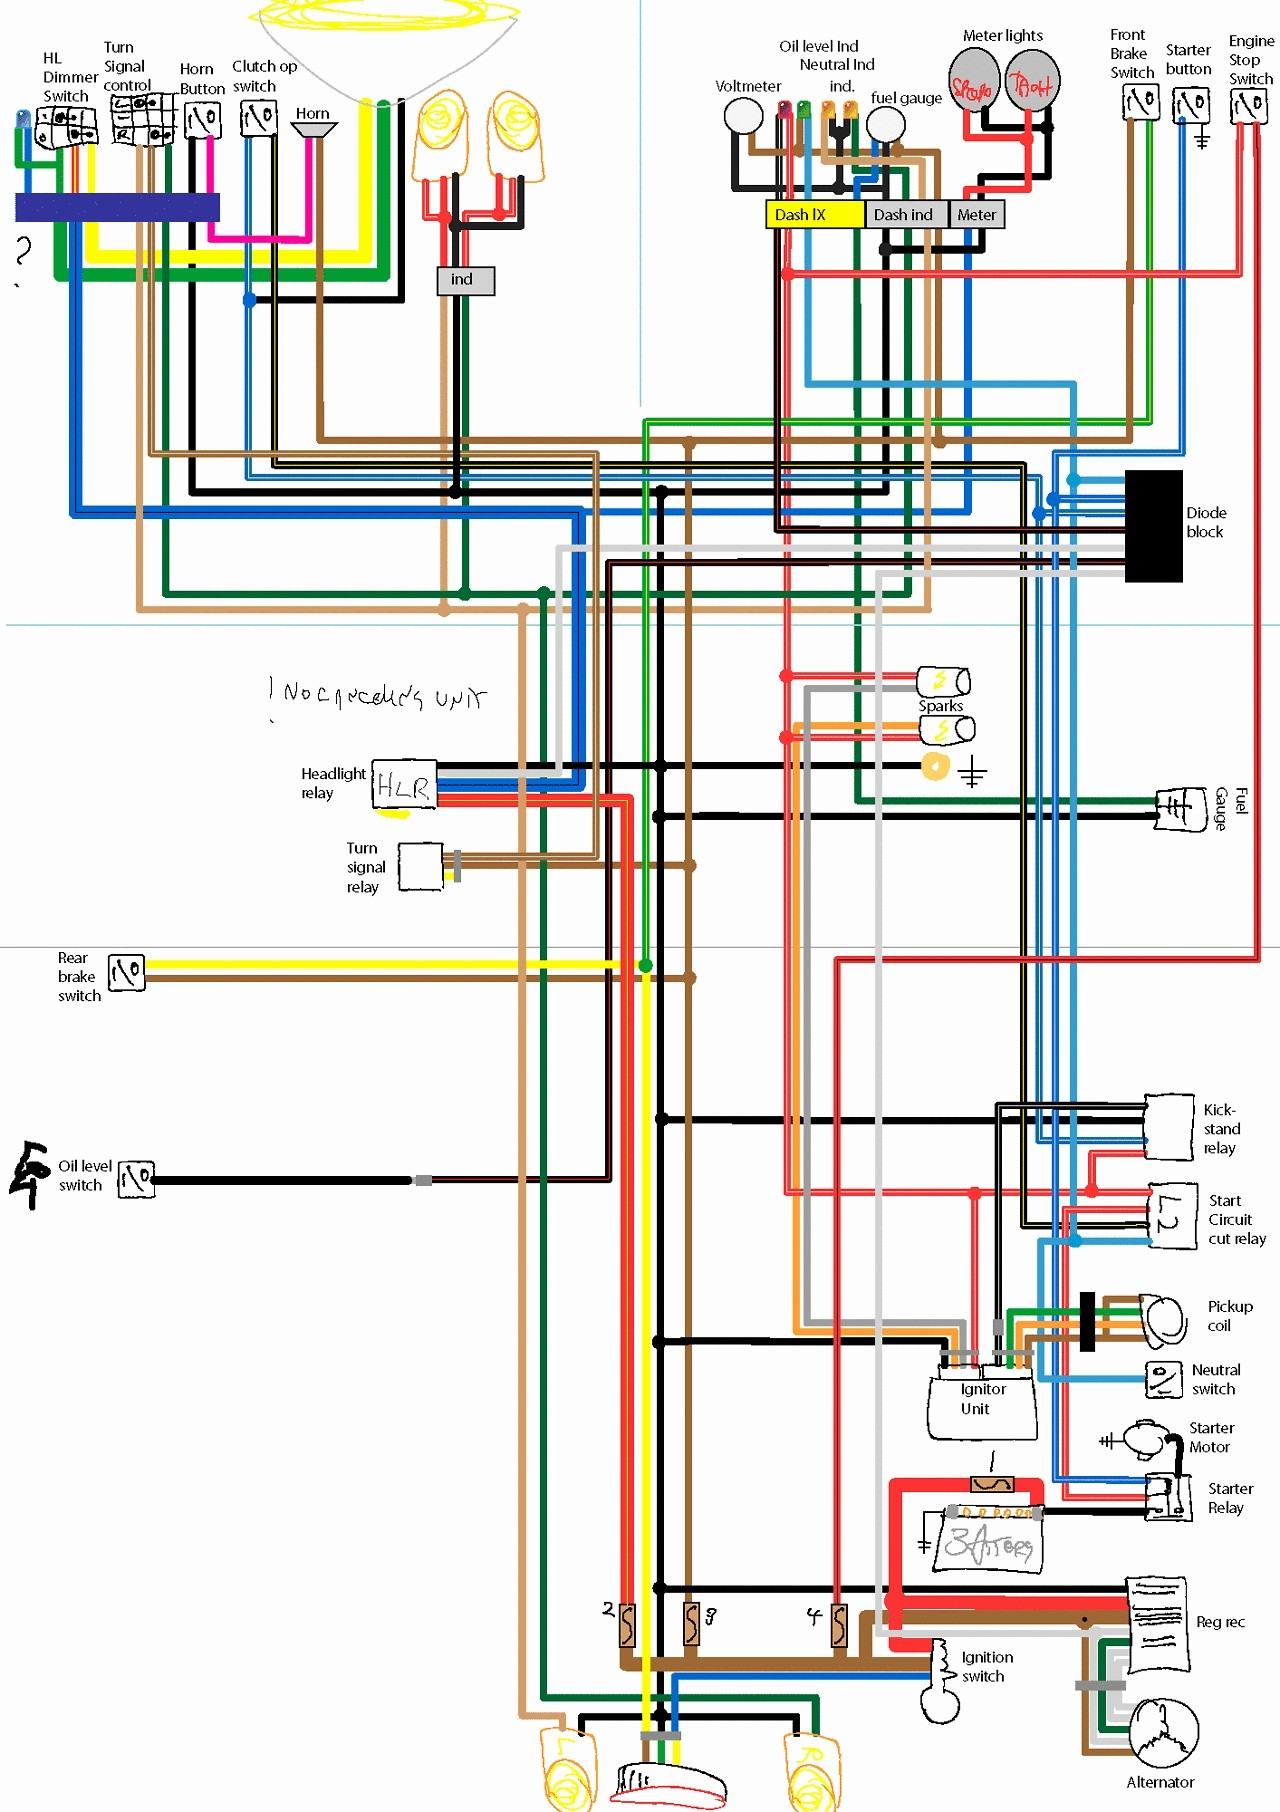 Diagram Website Awesome Xs650 Wiring Diagram Car Pinterest Scooters Bobbers and